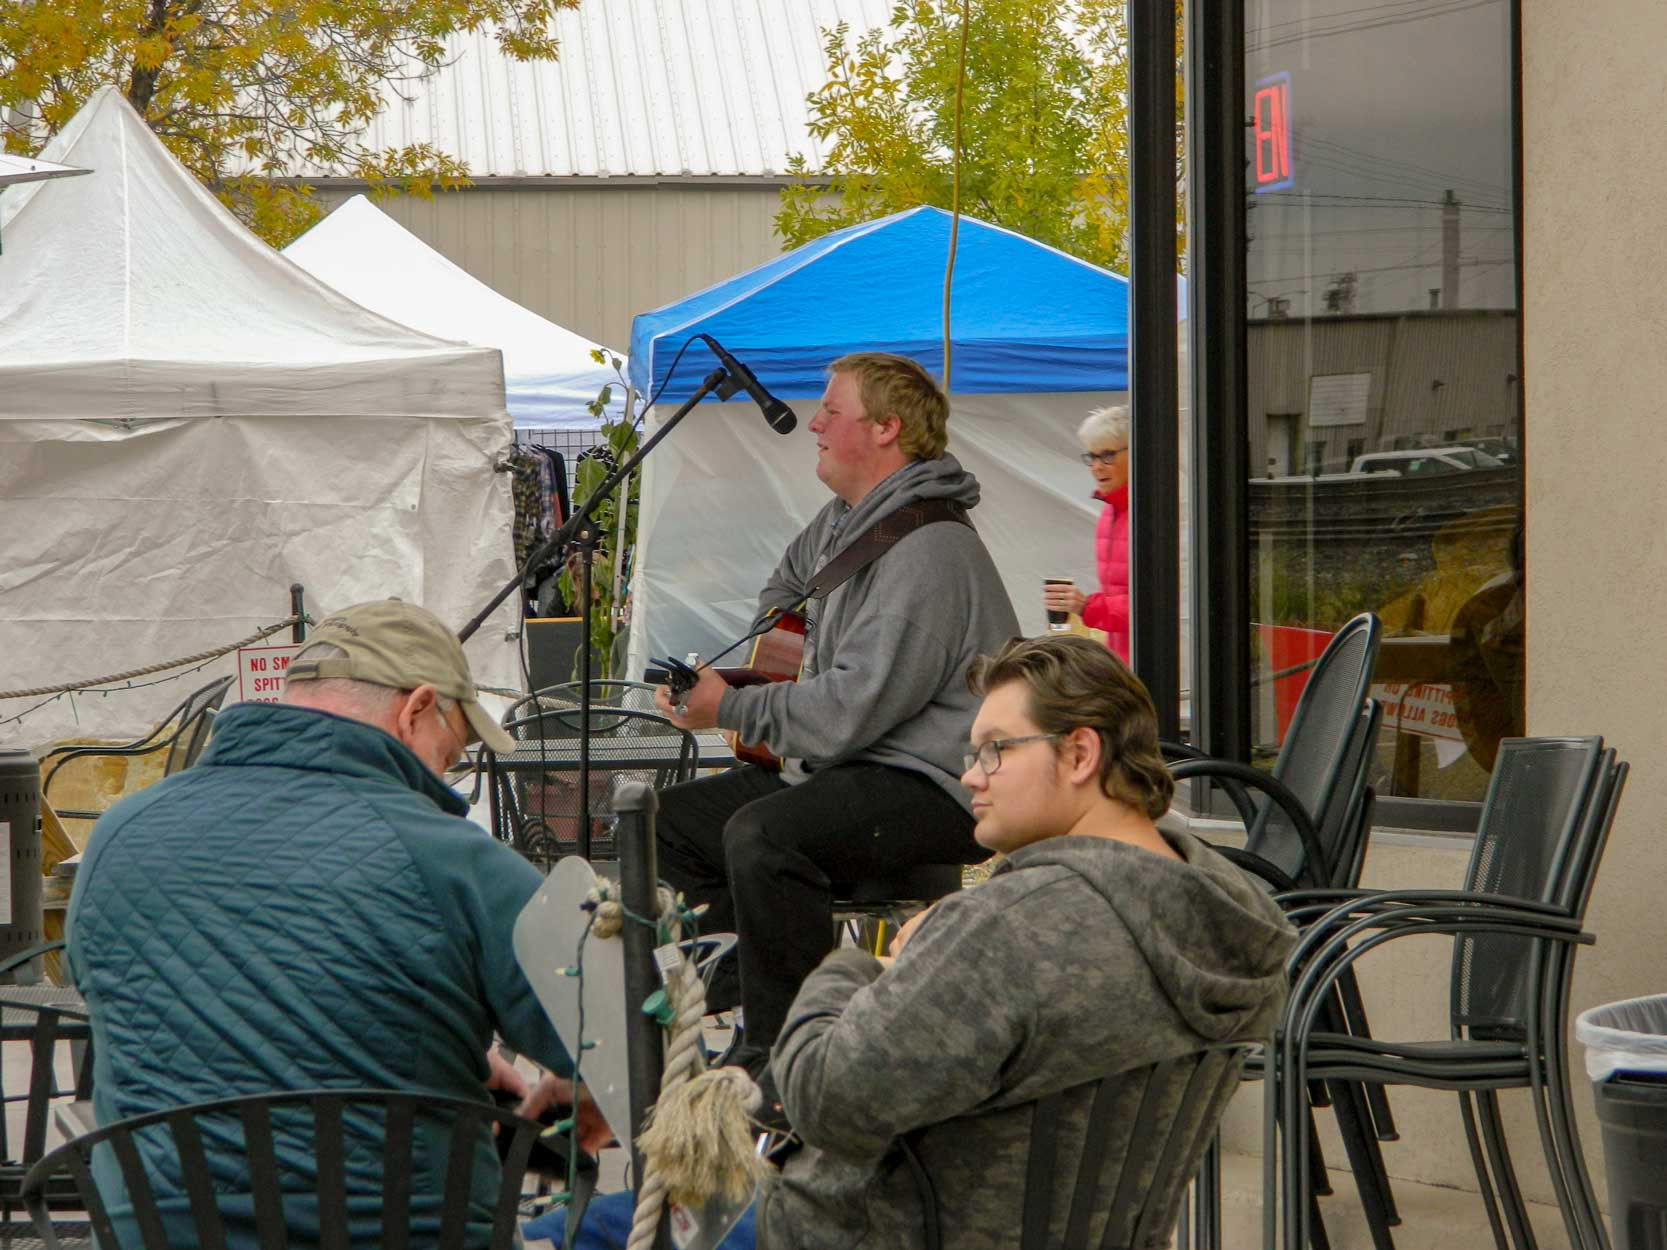 Forrest Guptill provided entertainment at the Saturday,Sept. 29, Fall Festival at High Plains Brewing and TheFront Porch. In addition to the music and beer, therewere a number of booths set up with merchants sellingclothing and other products, as well as four food trucks.